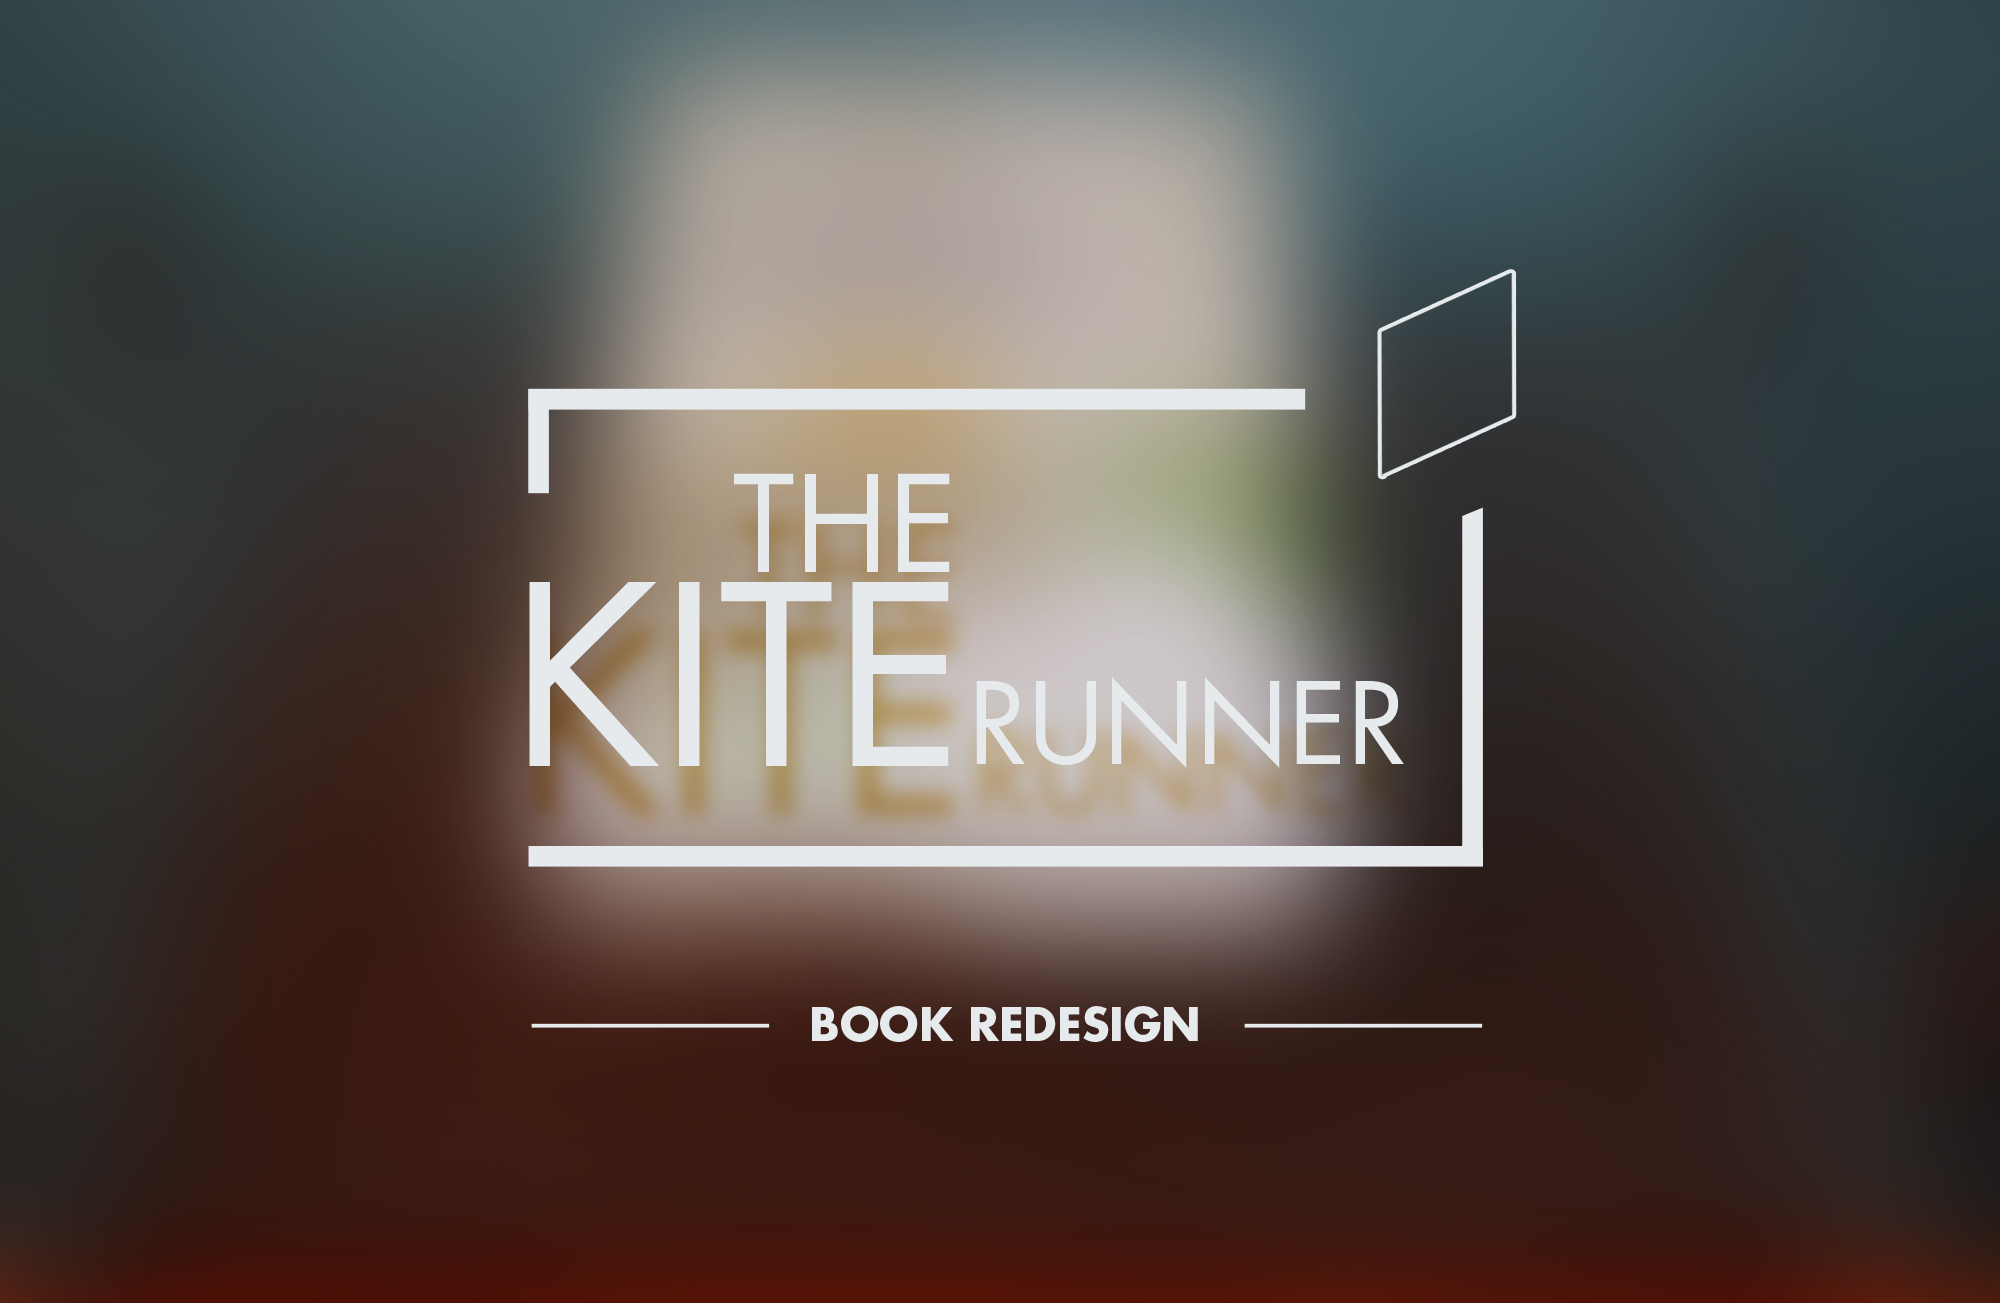 the kite runner rade design print the kite runner